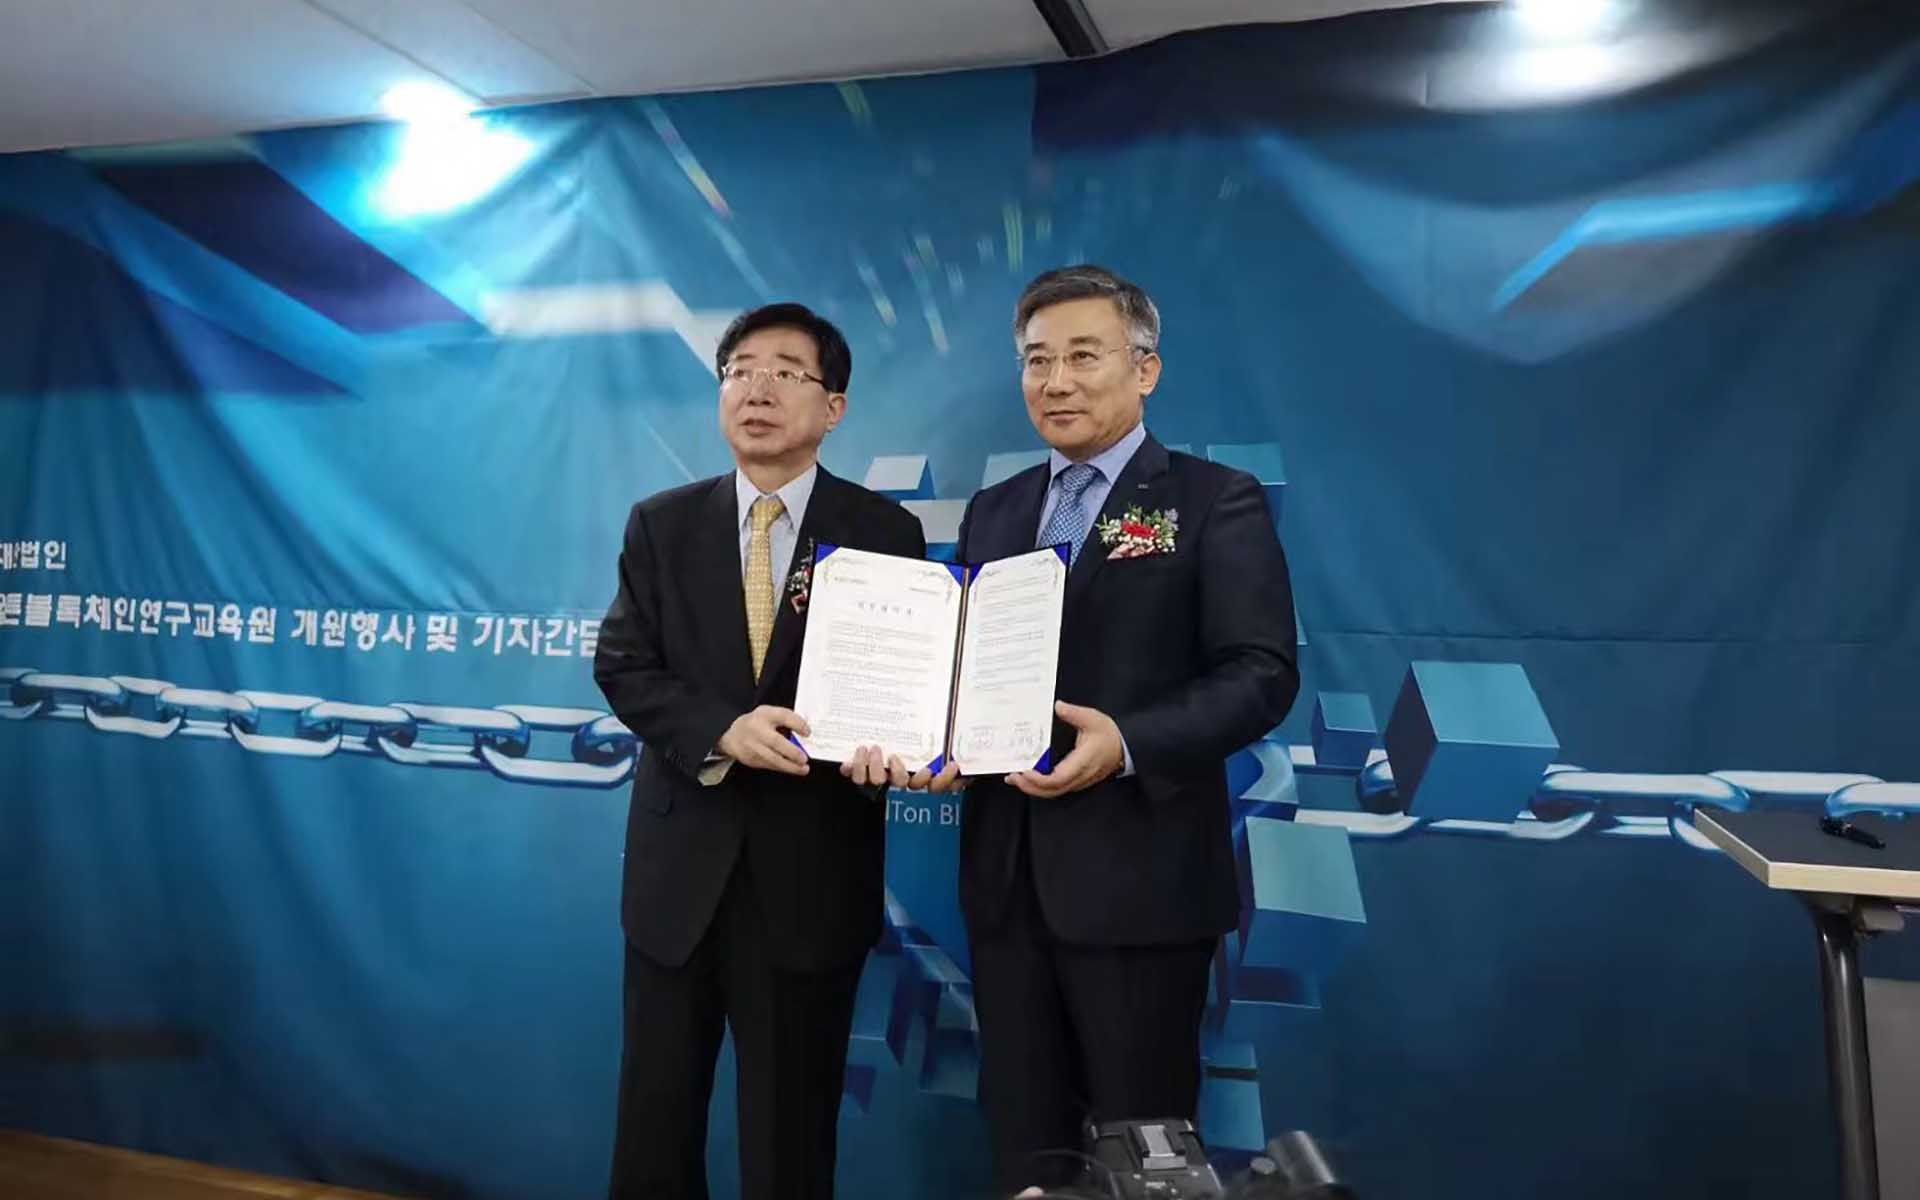 Waltonchain Partners with Korean Standards Association on Blockchain Education and Development Initiative